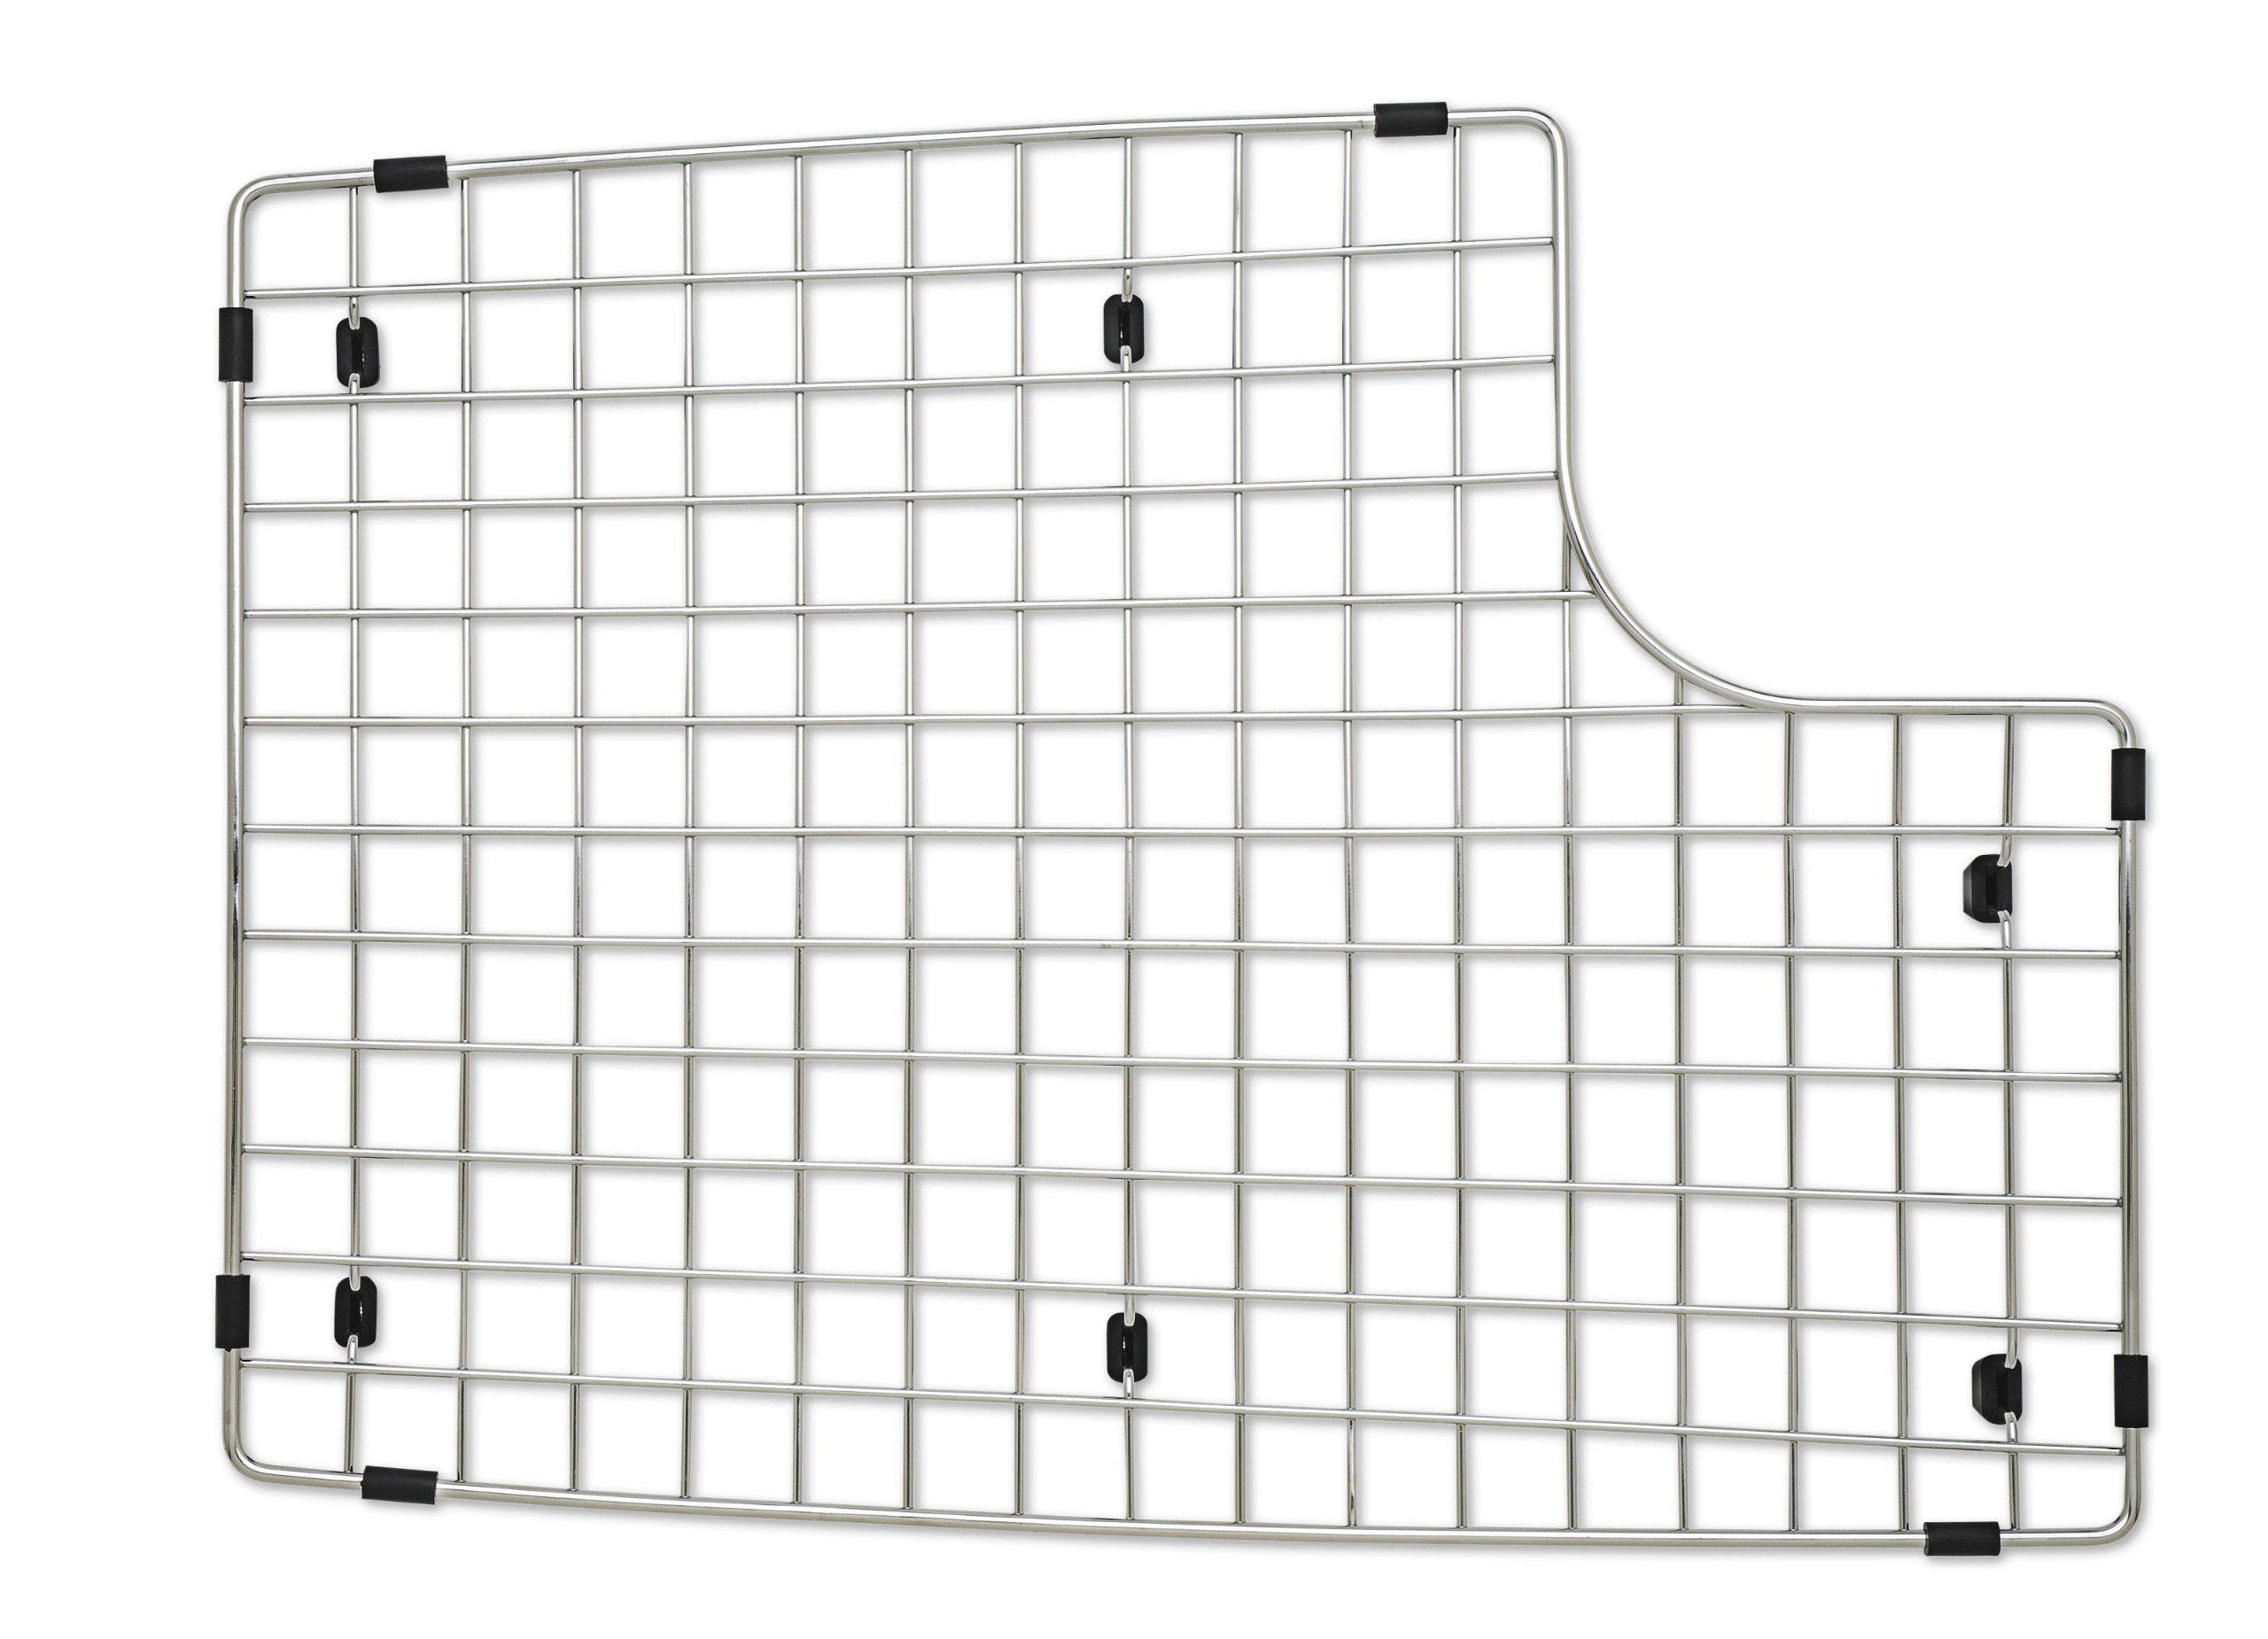 Blanco 222472 Stainless Steel Sink Grid (Performa Cascade) Accessory by Blanco